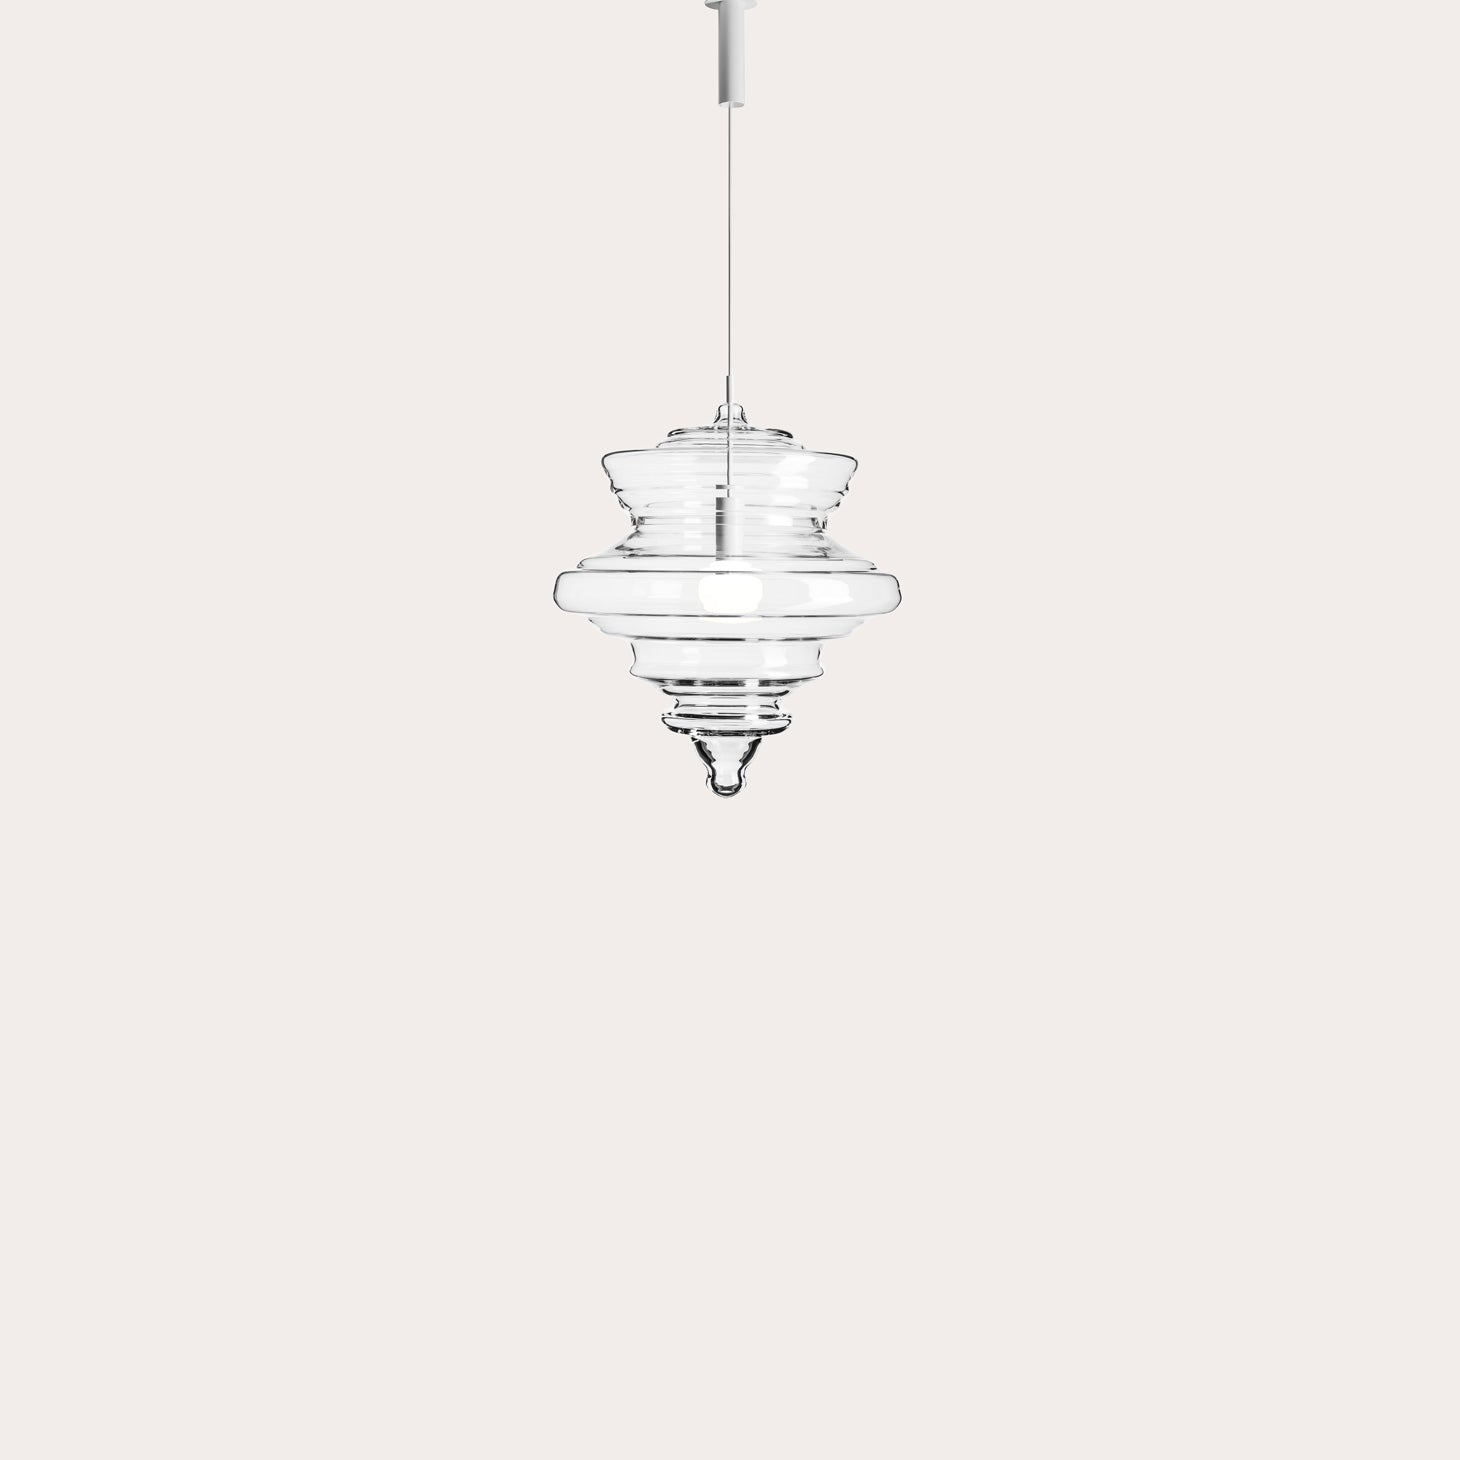 Never Ending Glory Pendant La Scala Lighting Jan Plecháč & Henry Wielgus Designer Furniture Sku: 110-160-10008